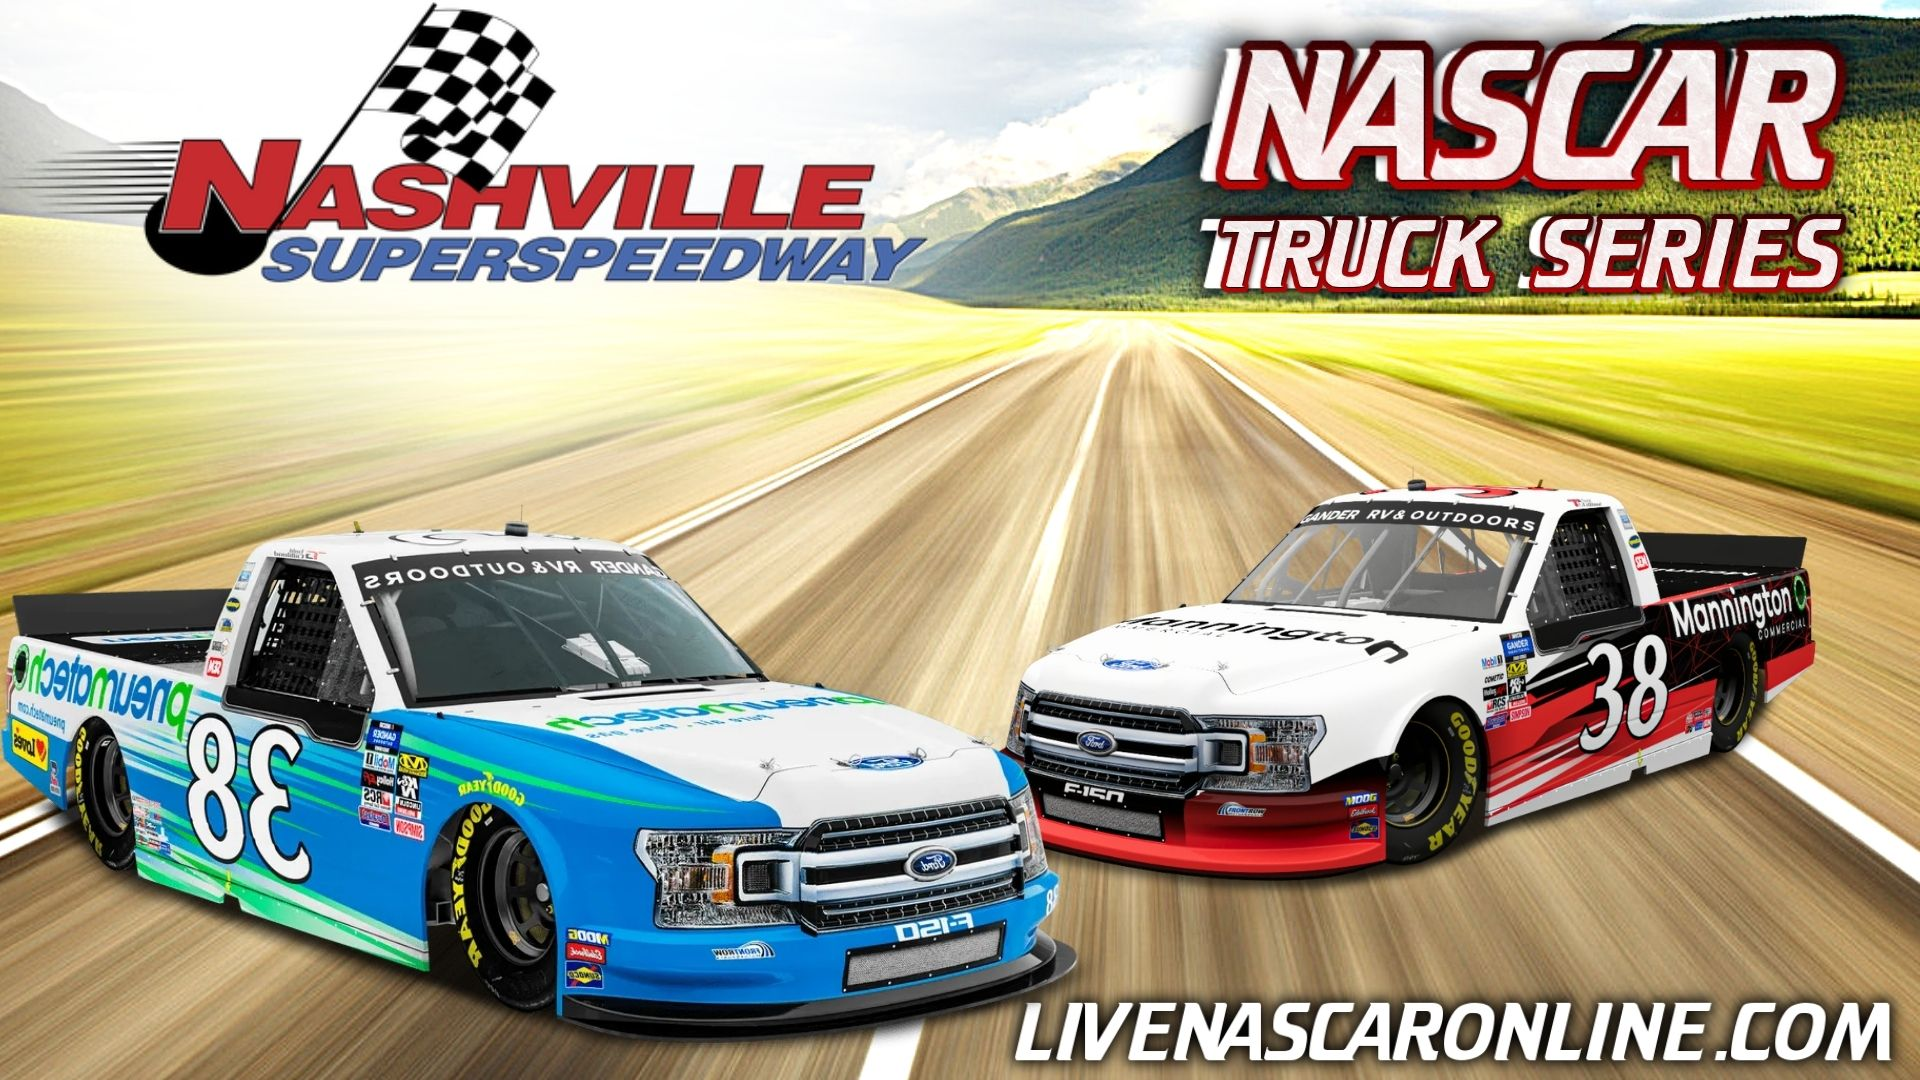 NASCAR Truck Race at Nashville Live Stream 2021